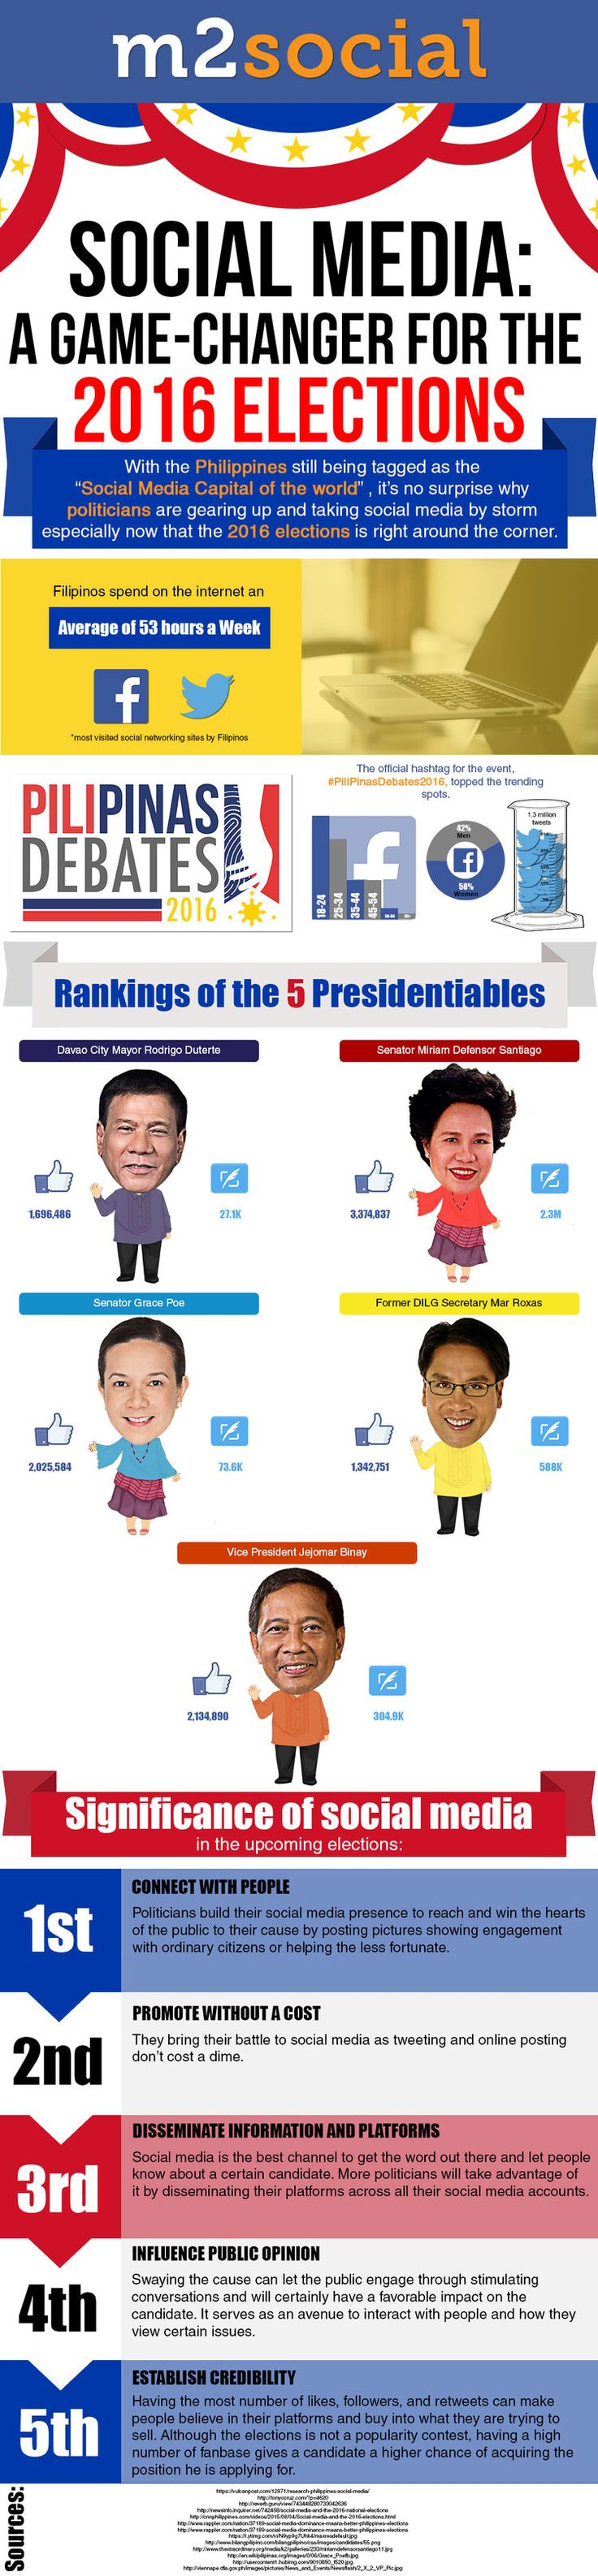 Social Media & the 2016 Philippine Presidential Election infographic.